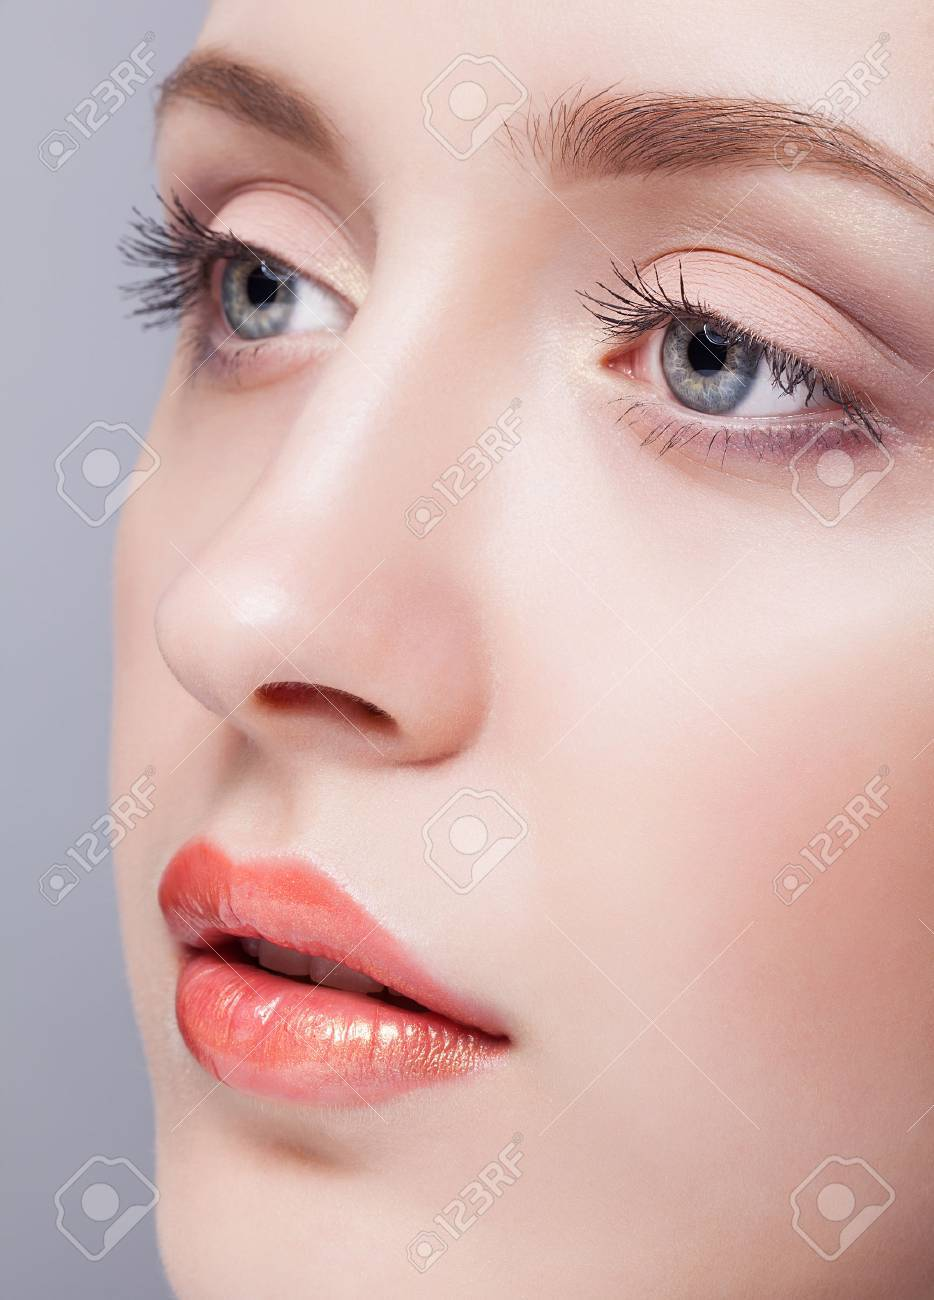 Closeup shot of female blue colour eyes with day makeup - 55841447